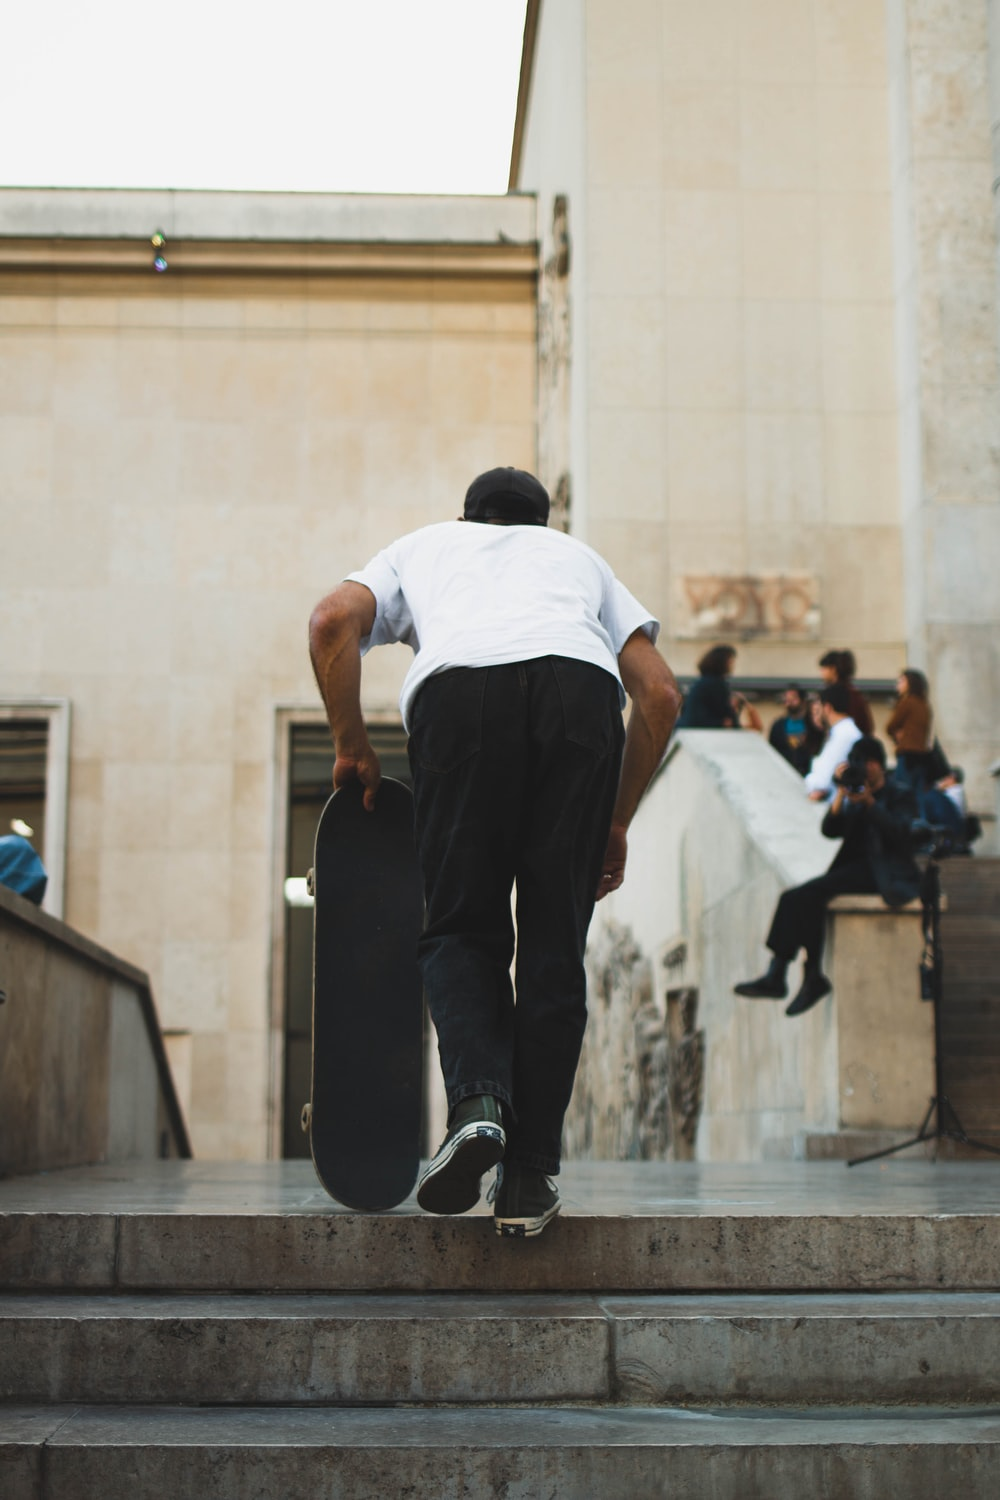 man in white t-shirt and black pants holding skateboard